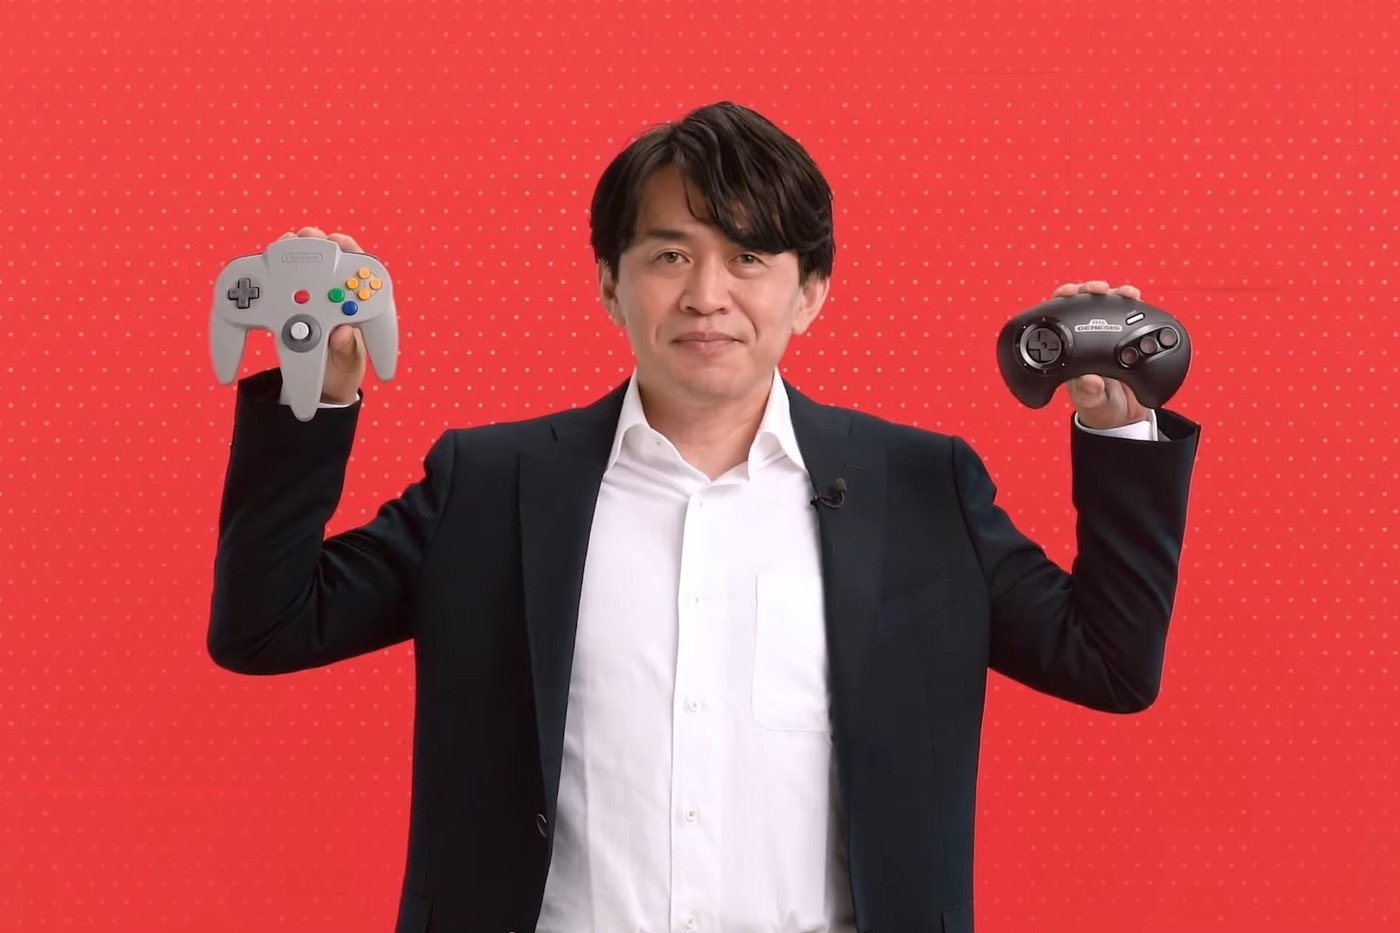 A Nintendo executive shows the new Nintendo 64 (L) and Sega Genesis controllers in this promotional photo released by Nintendo (Credit: Nintendo)